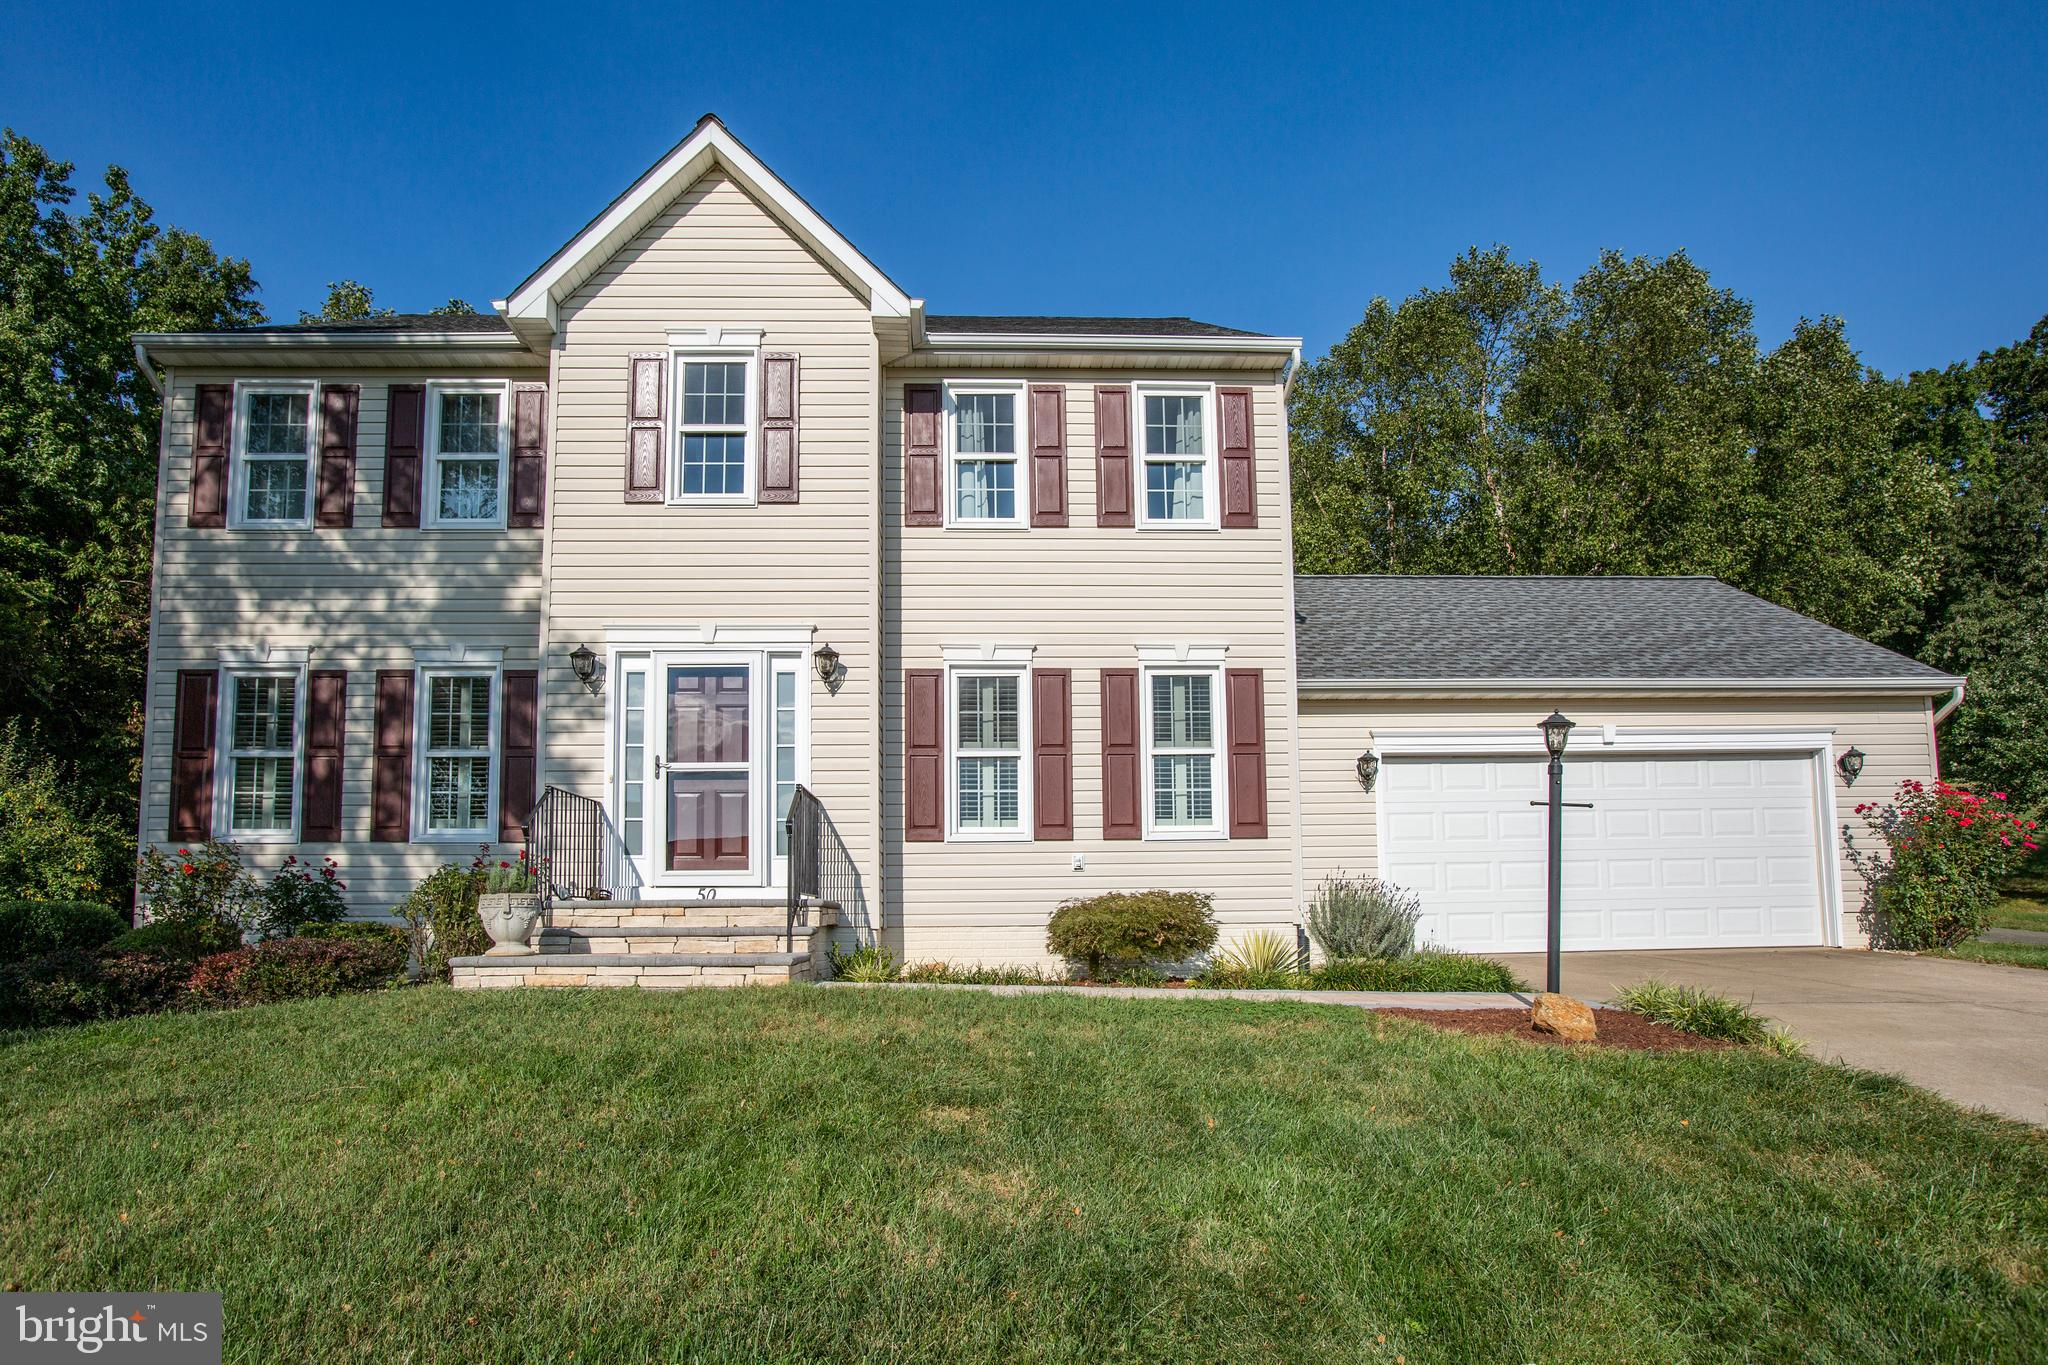 MOVE IN READY in Stafford Lakes Village.  This renovated home is ready for new owners and features m